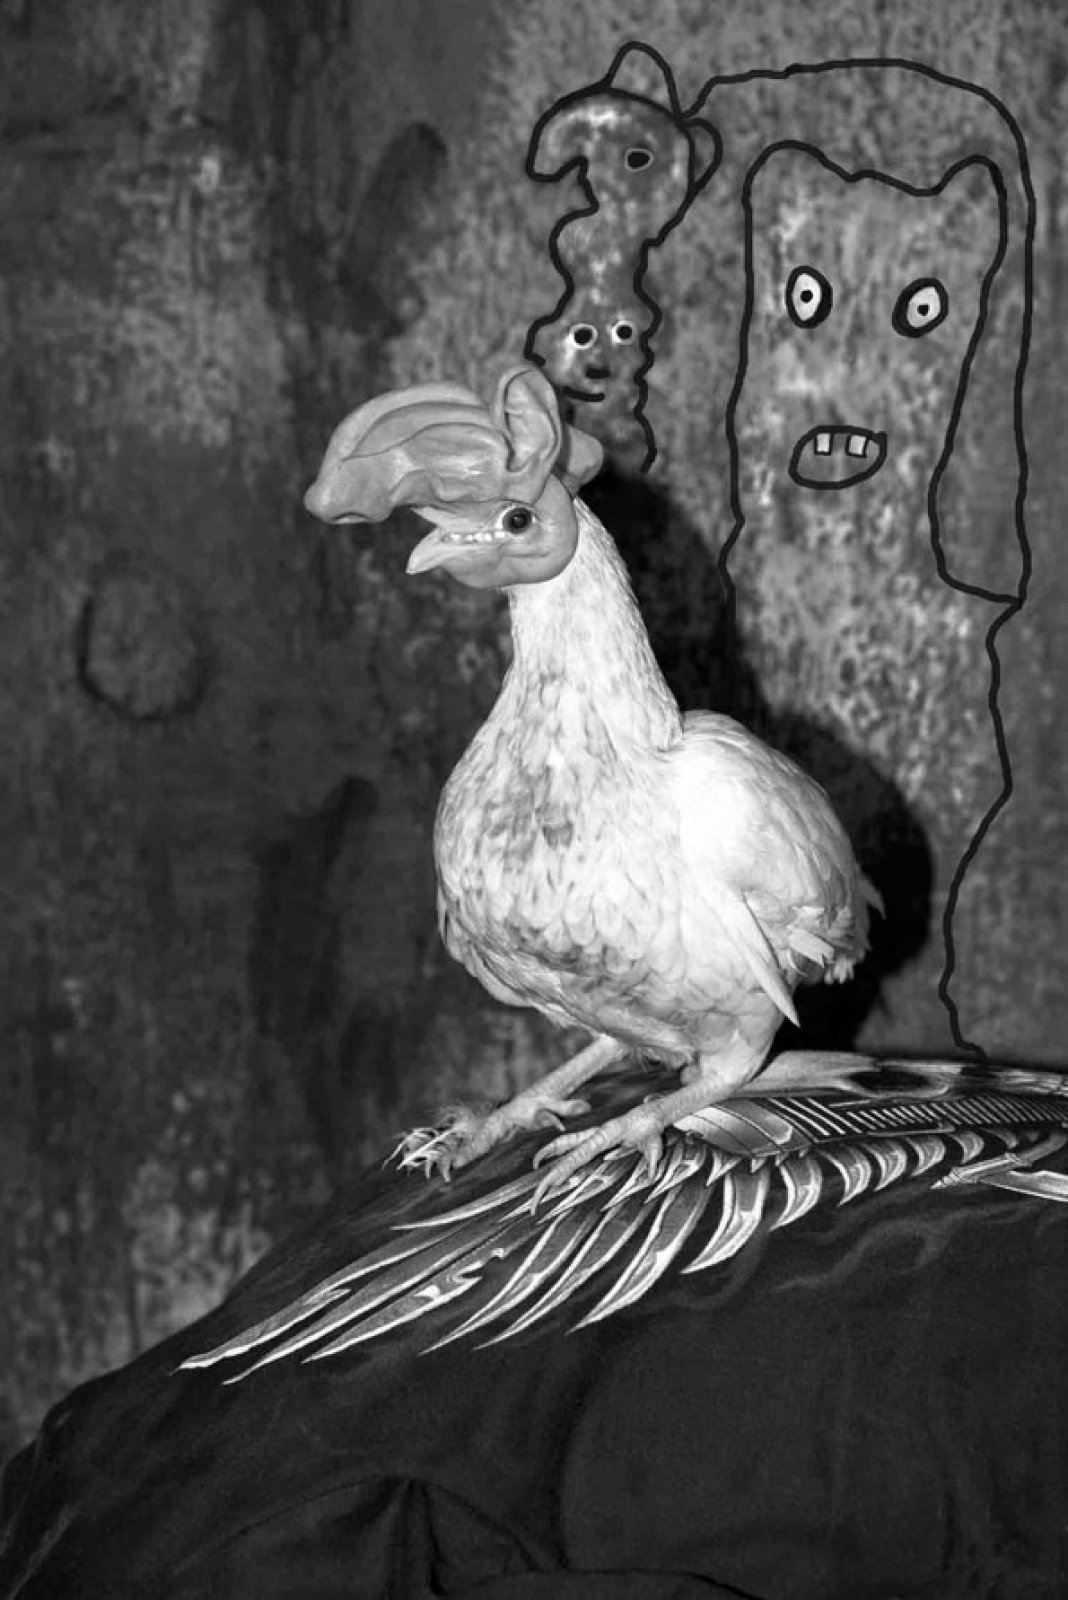 Chicken on Back, 2016 © Roger Ballen & Asger Carlsen